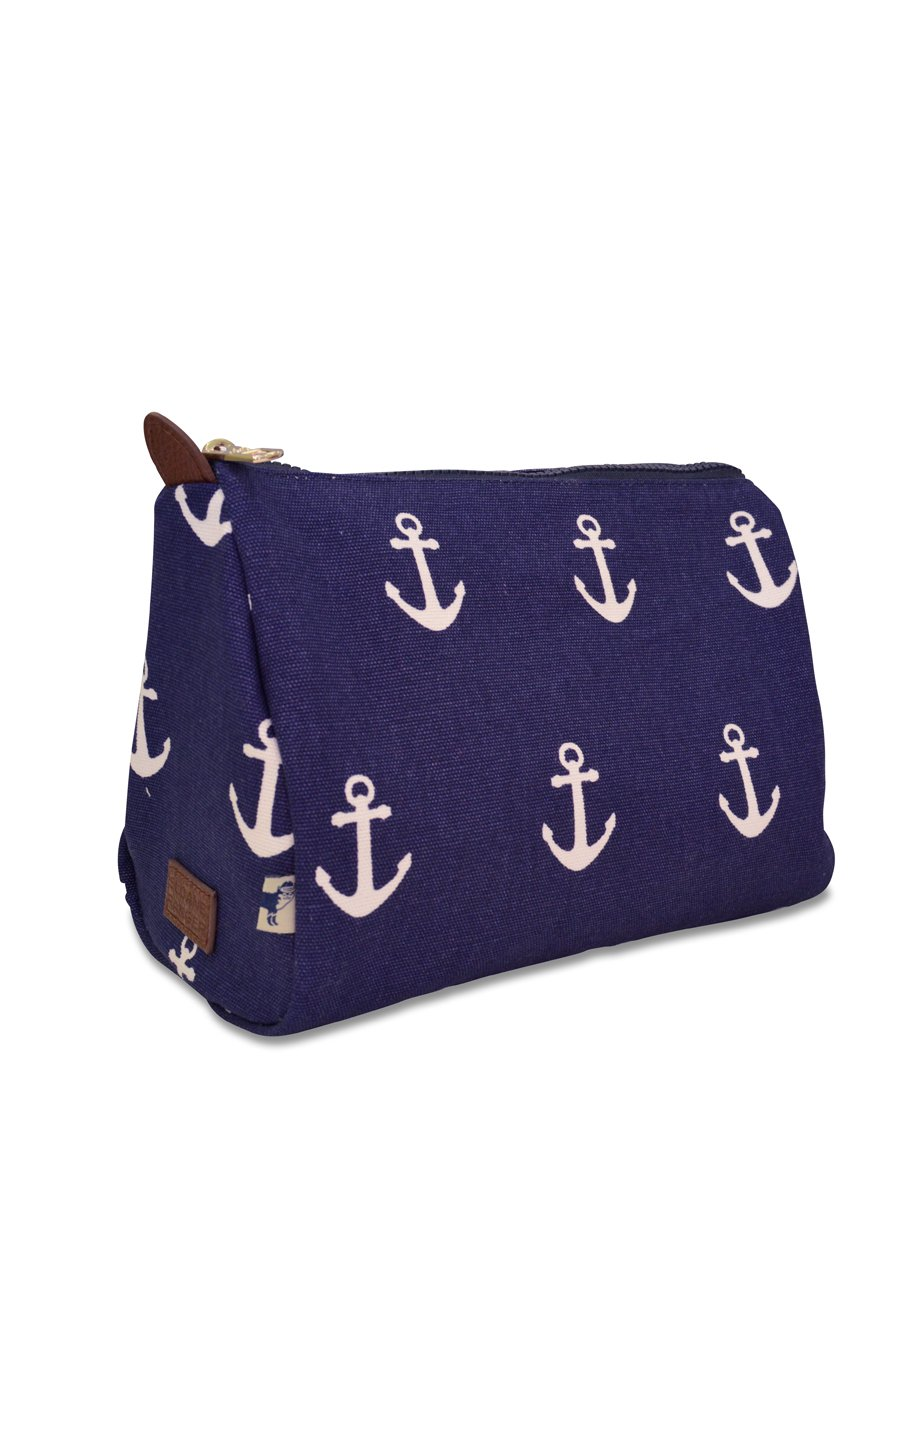 anchor cosmetic pouch. - FINAL SALE